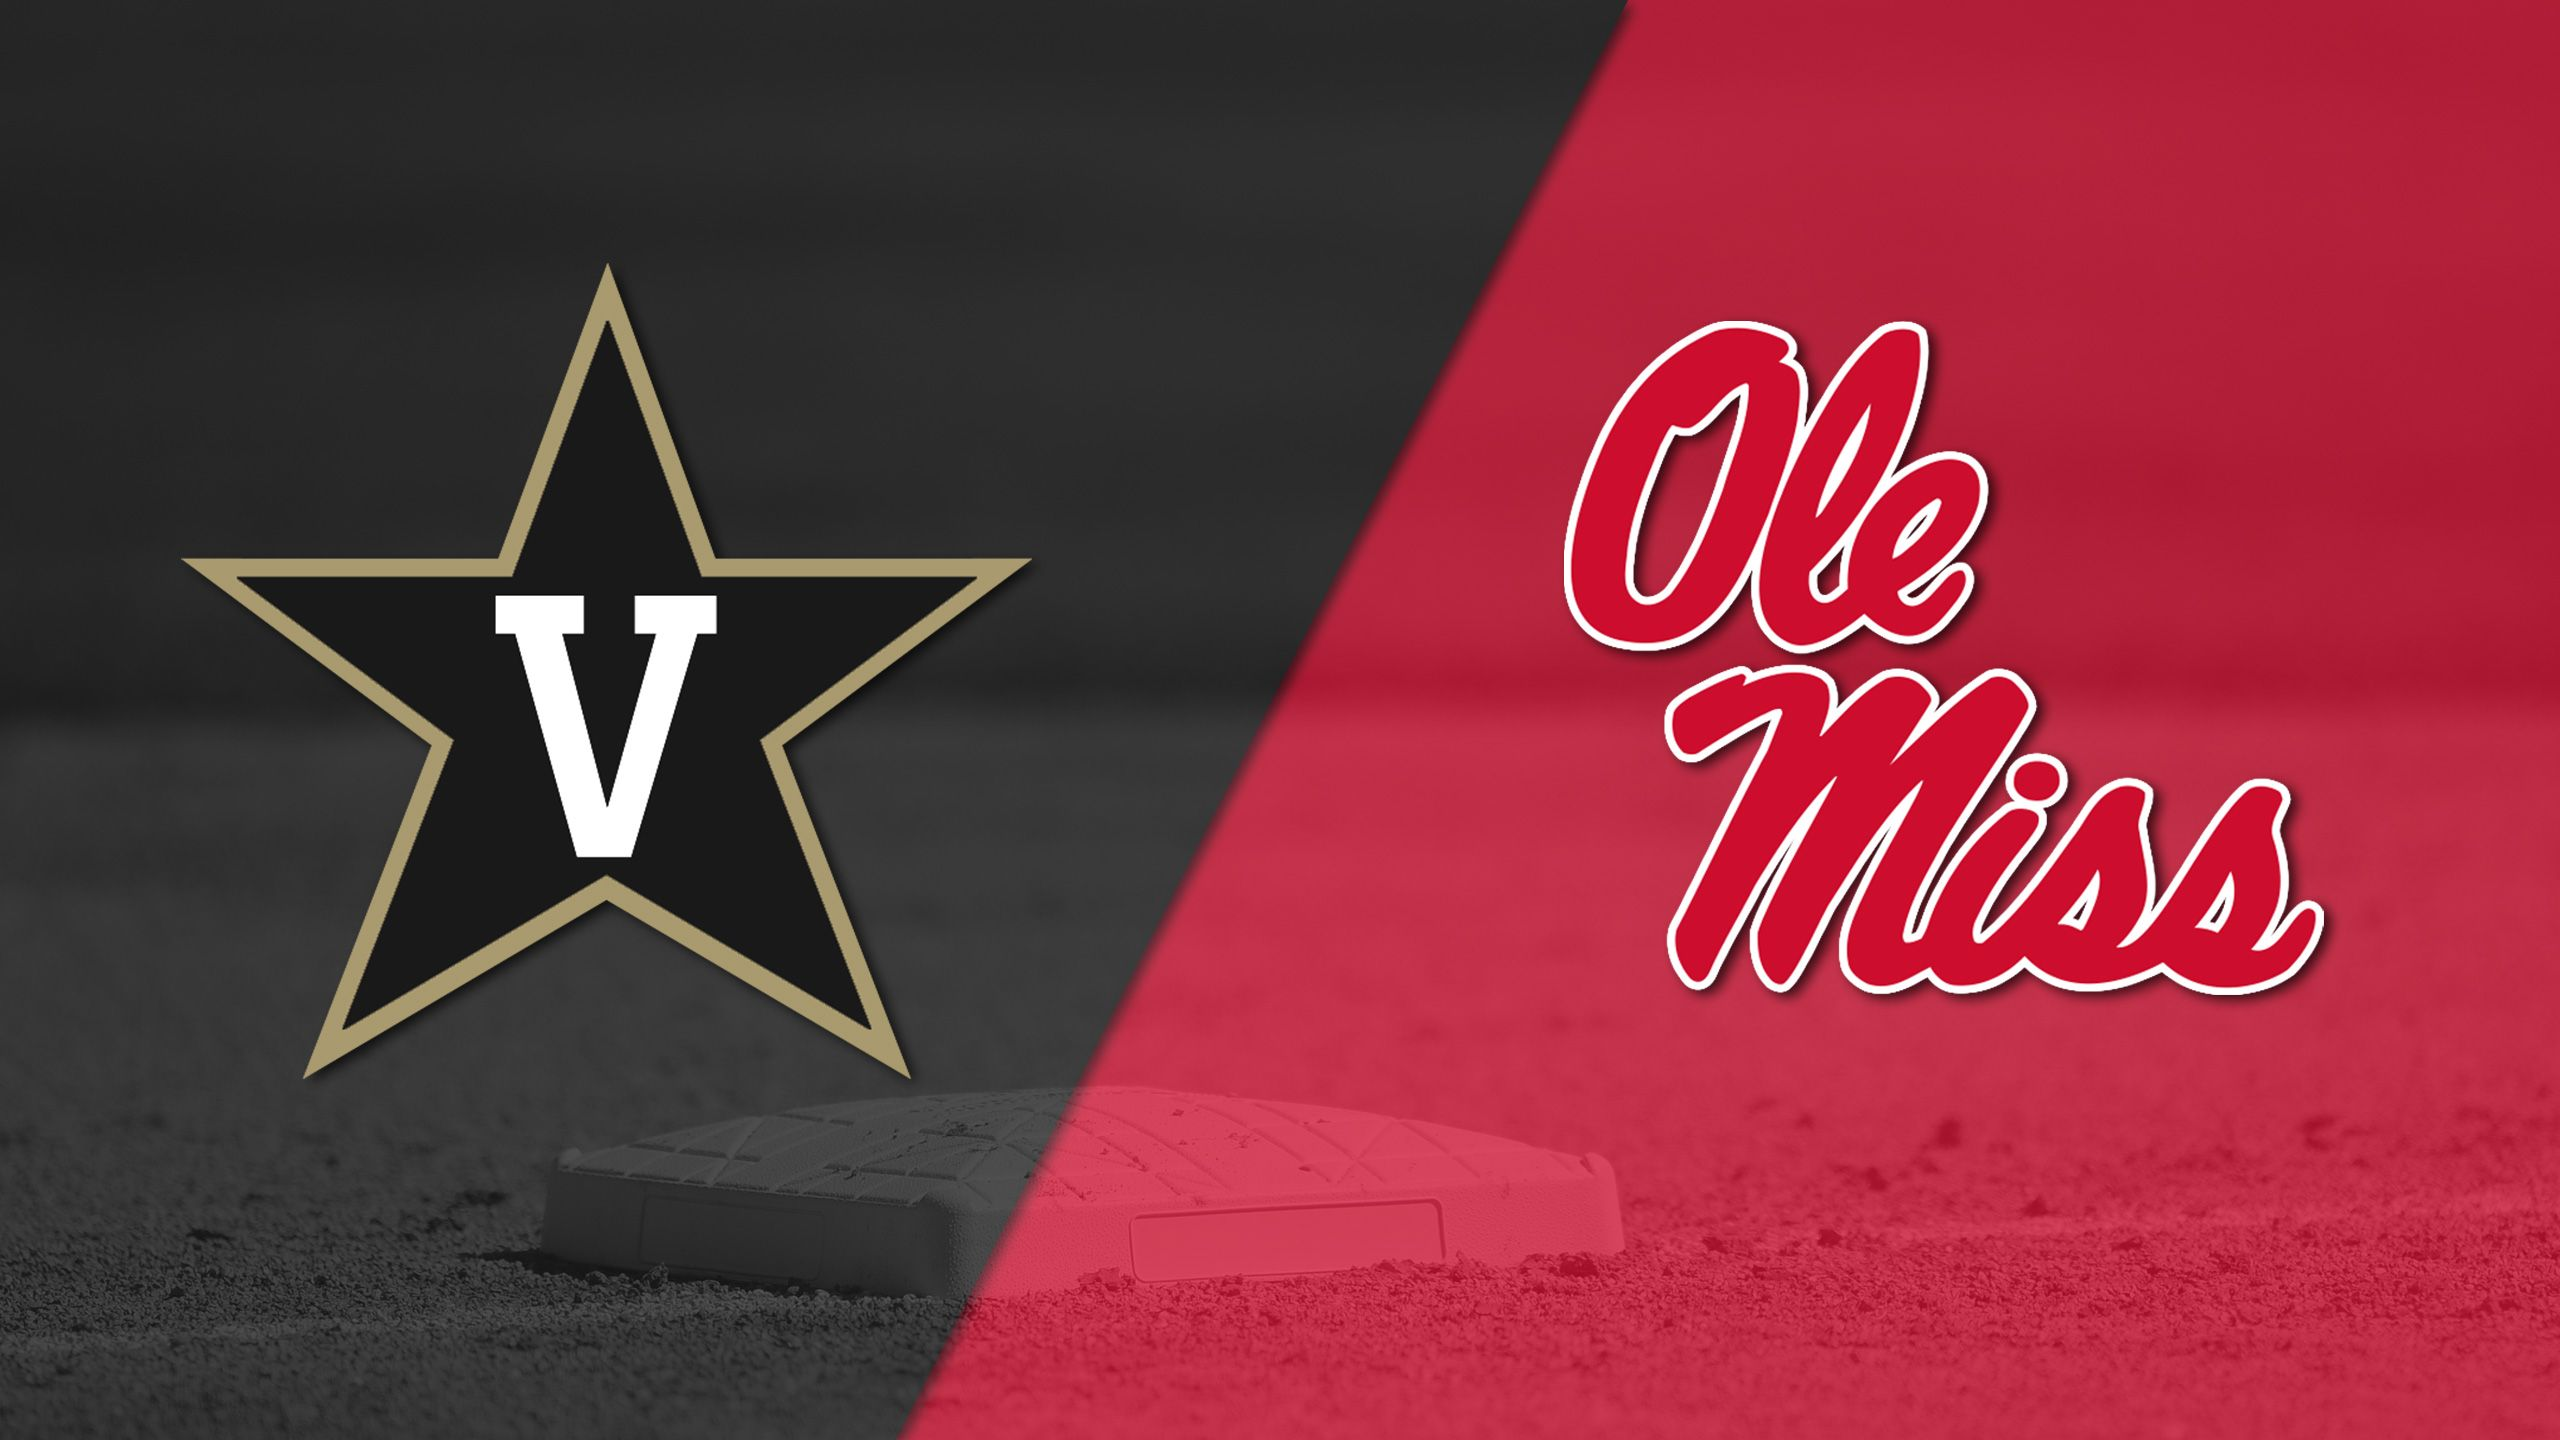 #23 Vanderbilt vs. #19 Ole Miss (Baseball)